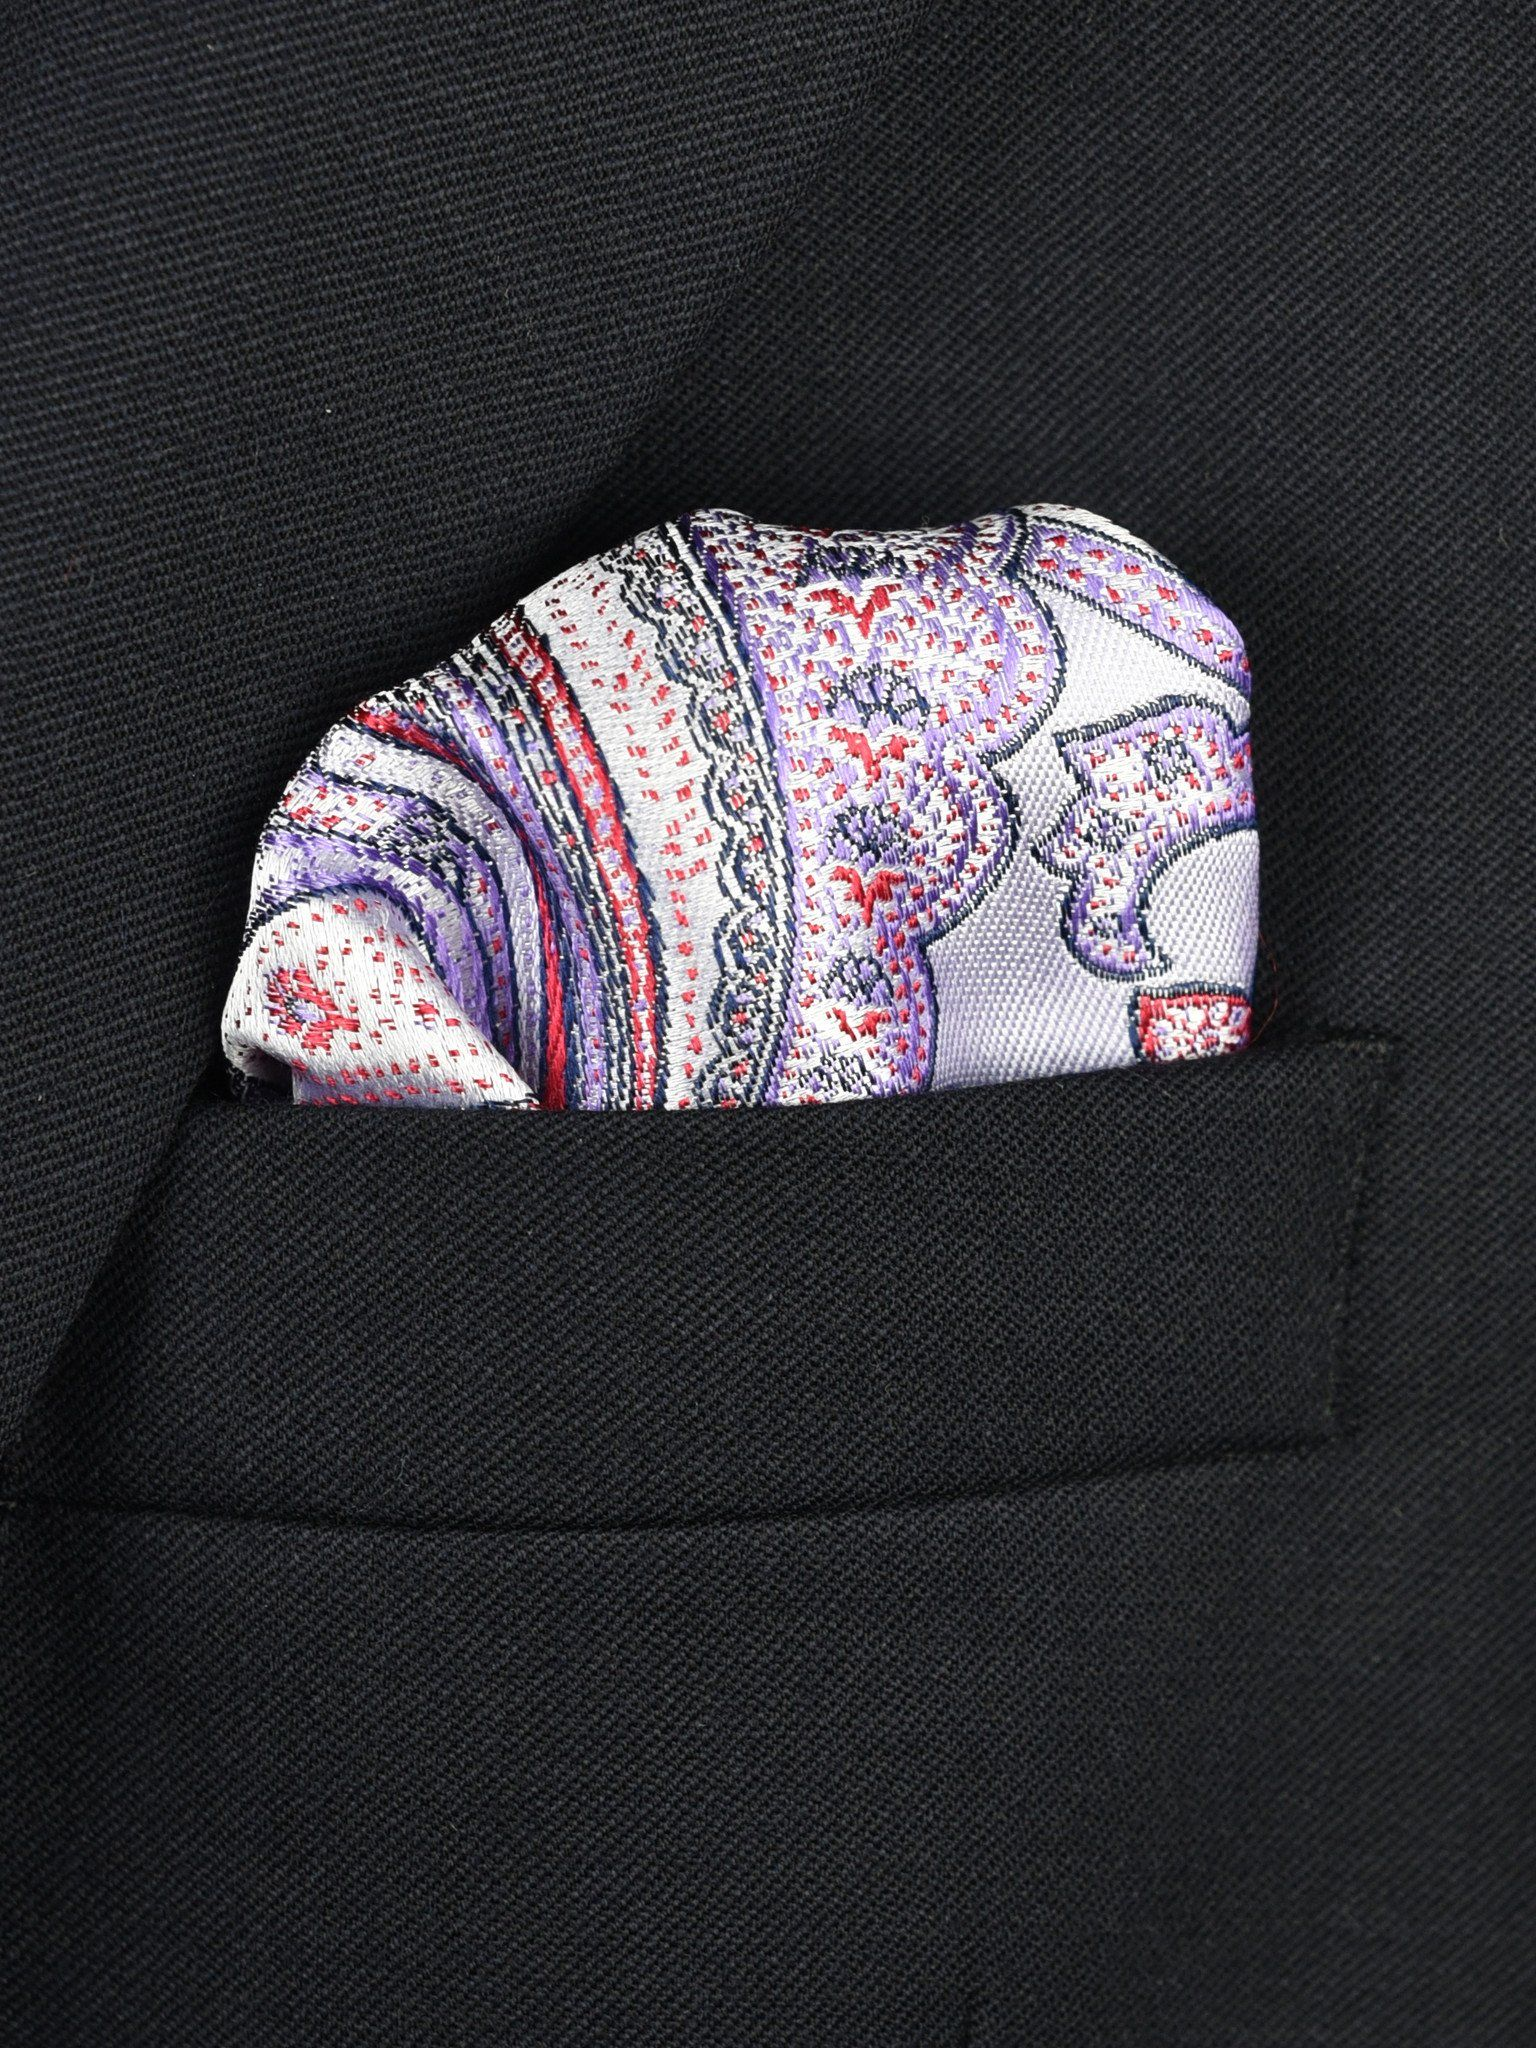 Boy's Pocket Square 22381 Lilac/Red Paisley